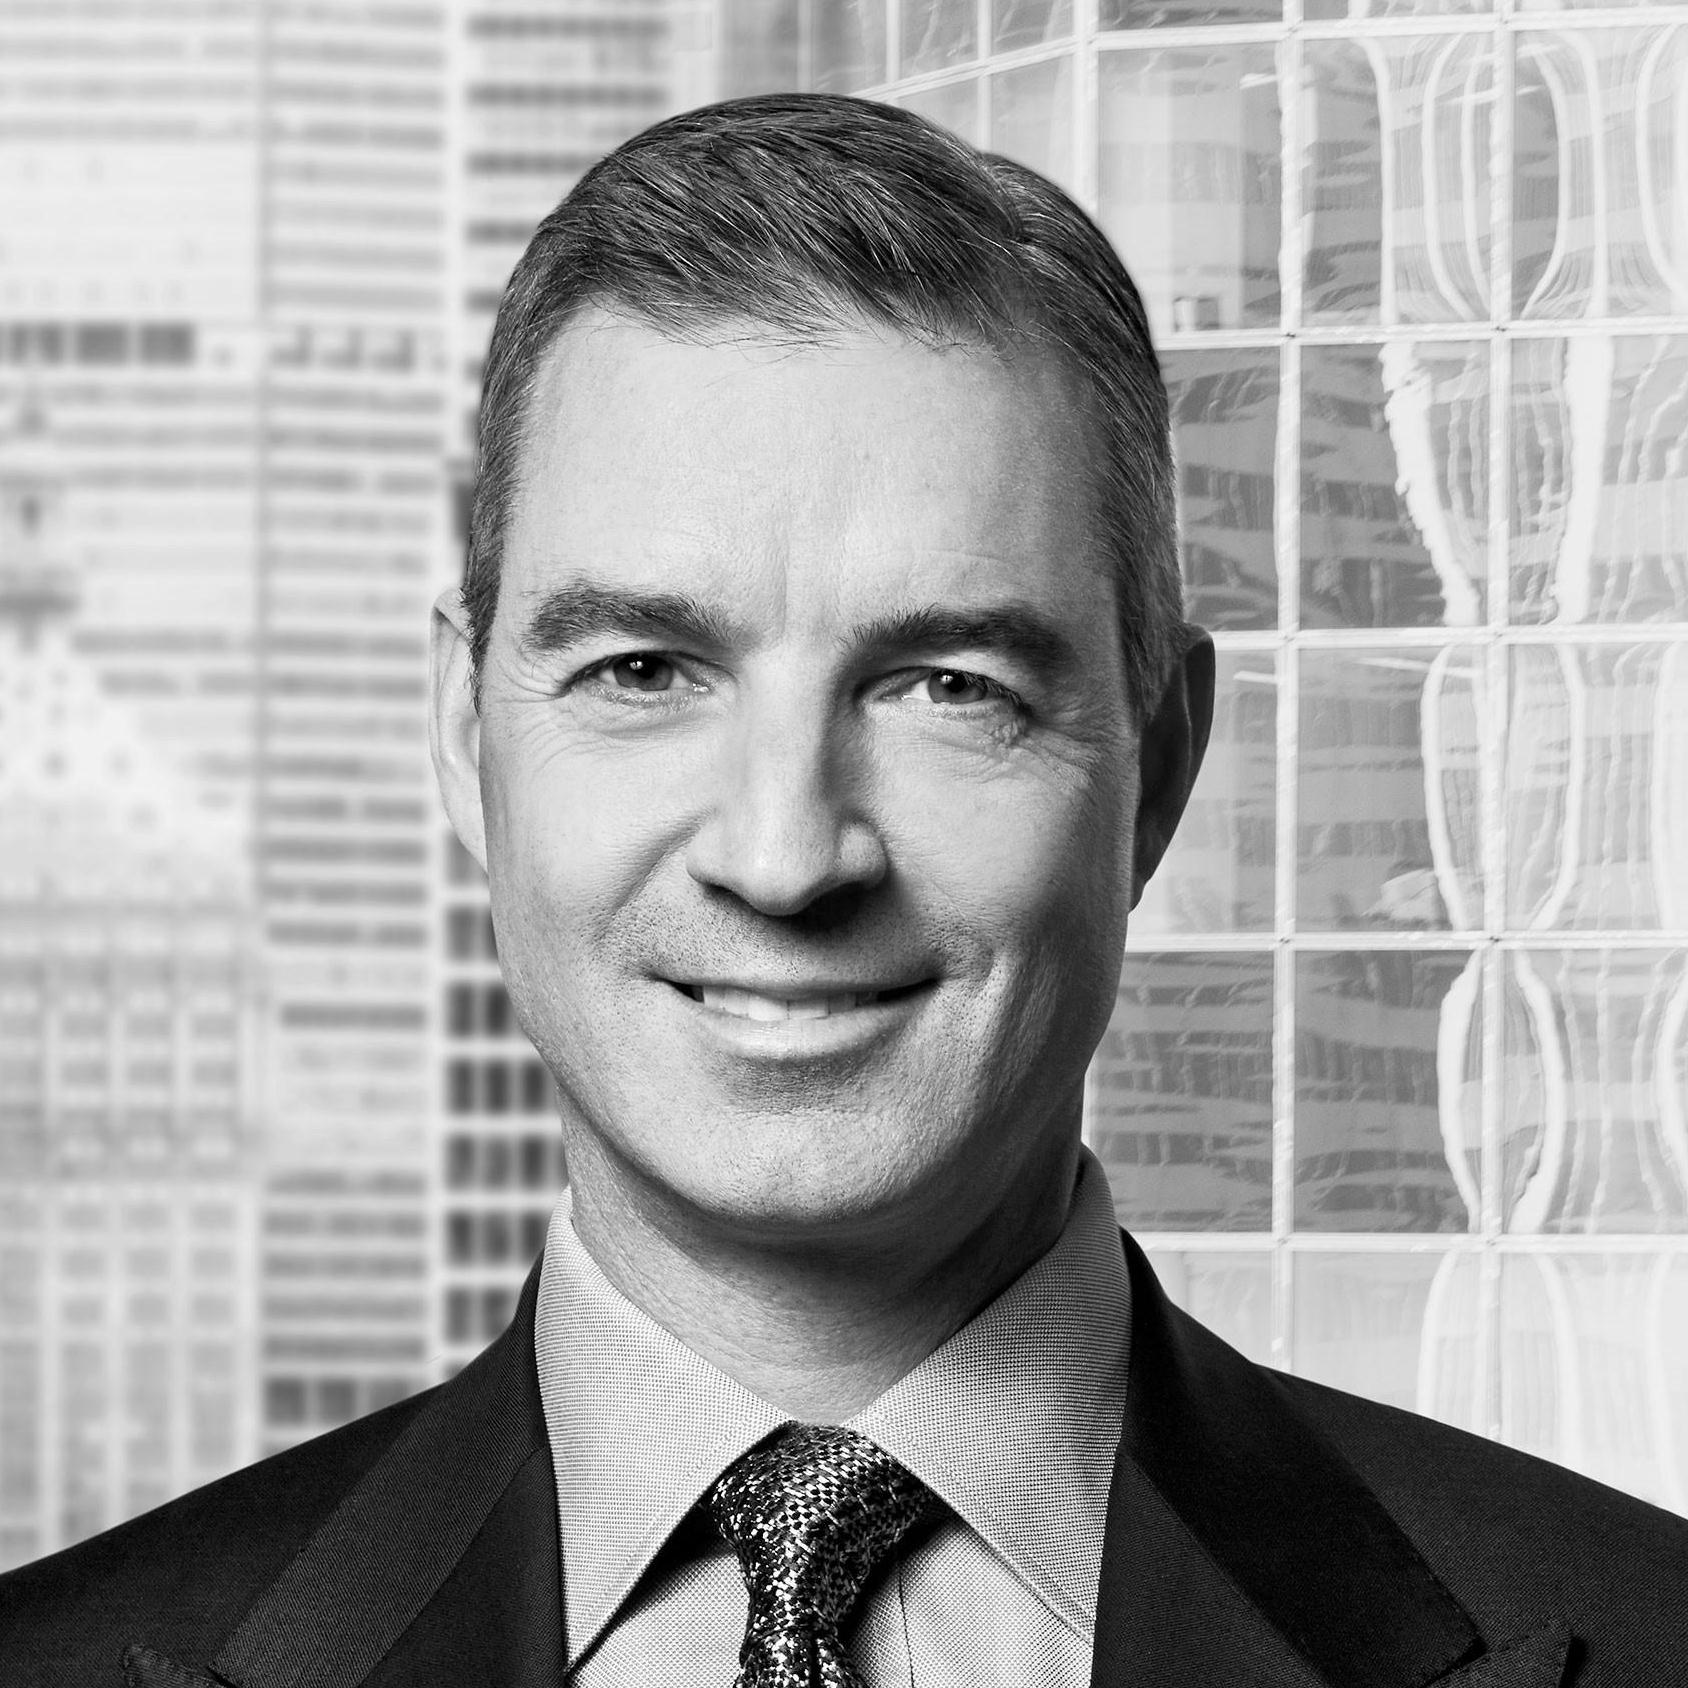 Daniel Loeb Official Headshot.jpg